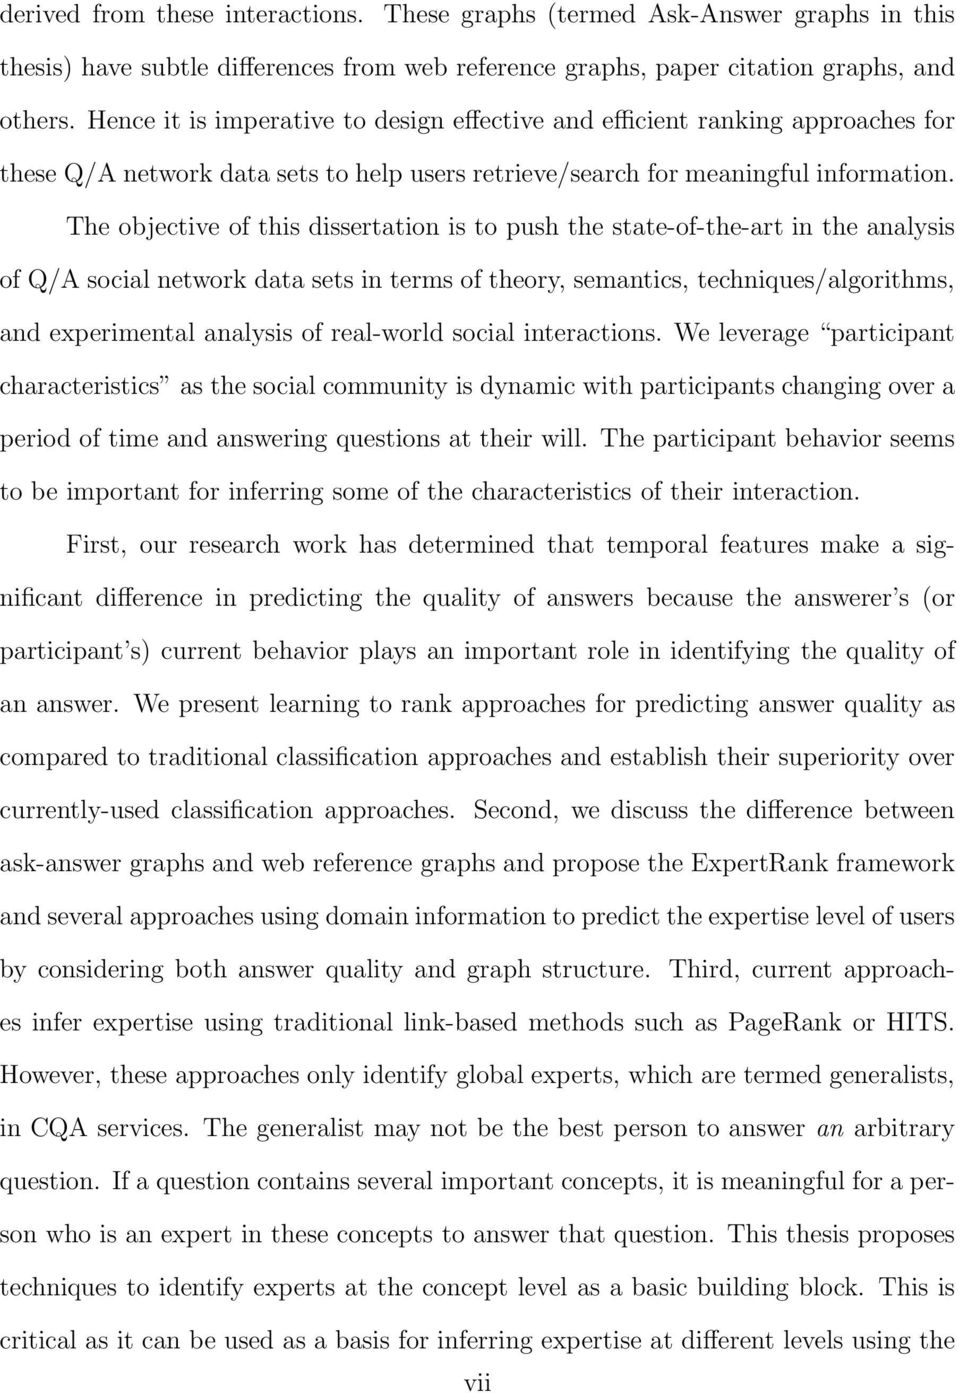 The objective of this dissertation is to push the state-of-the-art in the analysis of Q/A social network data sets in terms of theory, semantics, techniques/algorithms, and experimental analysis of